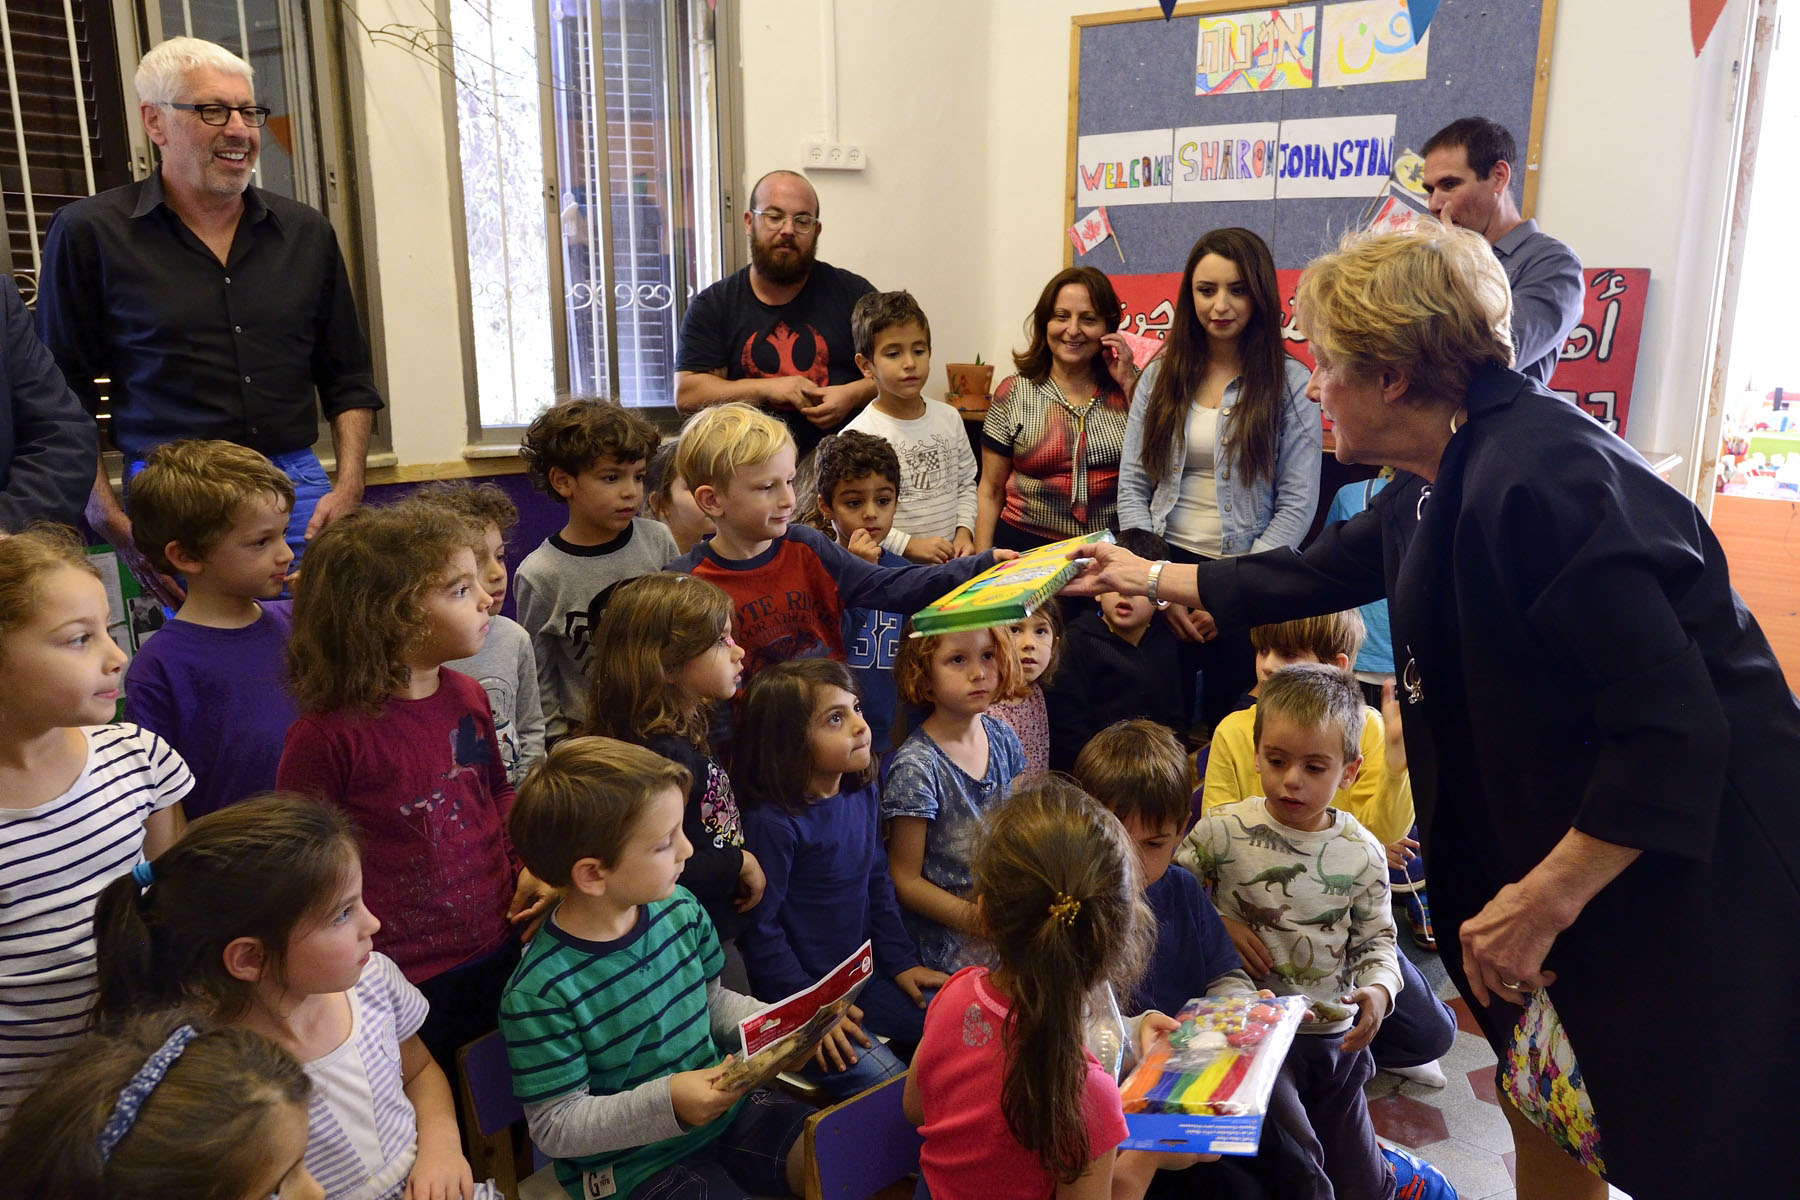 On this occasion, she presented school supplies to the children.